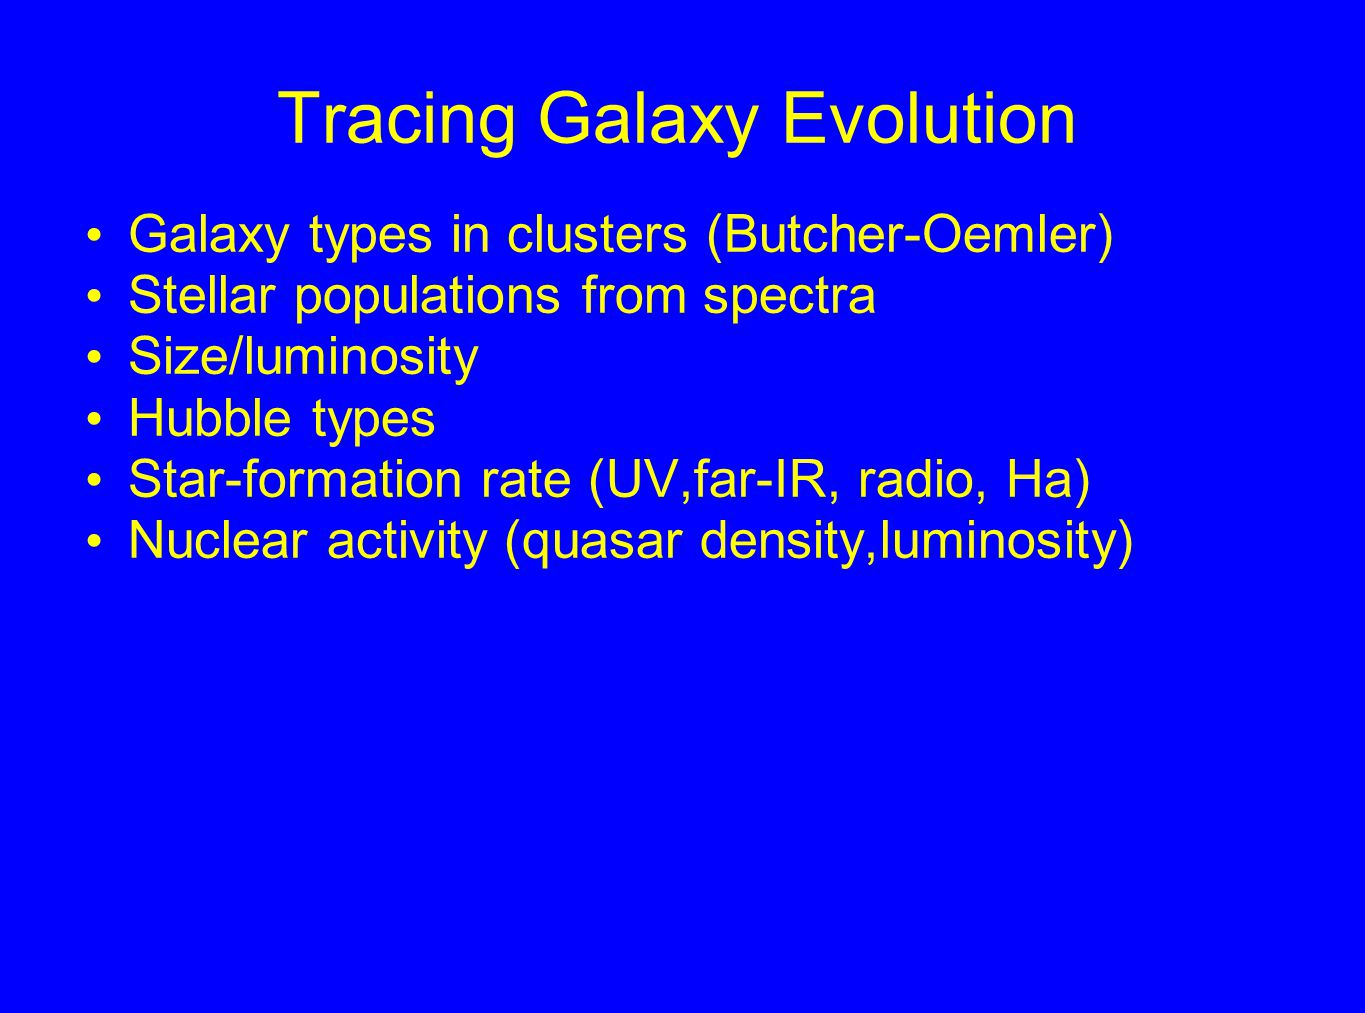 Tracing Galaxy Evolution Galaxy types in clusters (Butcher-Oemler) Stellar populations from spectra Size/luminosity Hubble types Star-formation rate (UV,far-IR, radio, Ha) Nuclear activity (quasar density,luminosity)